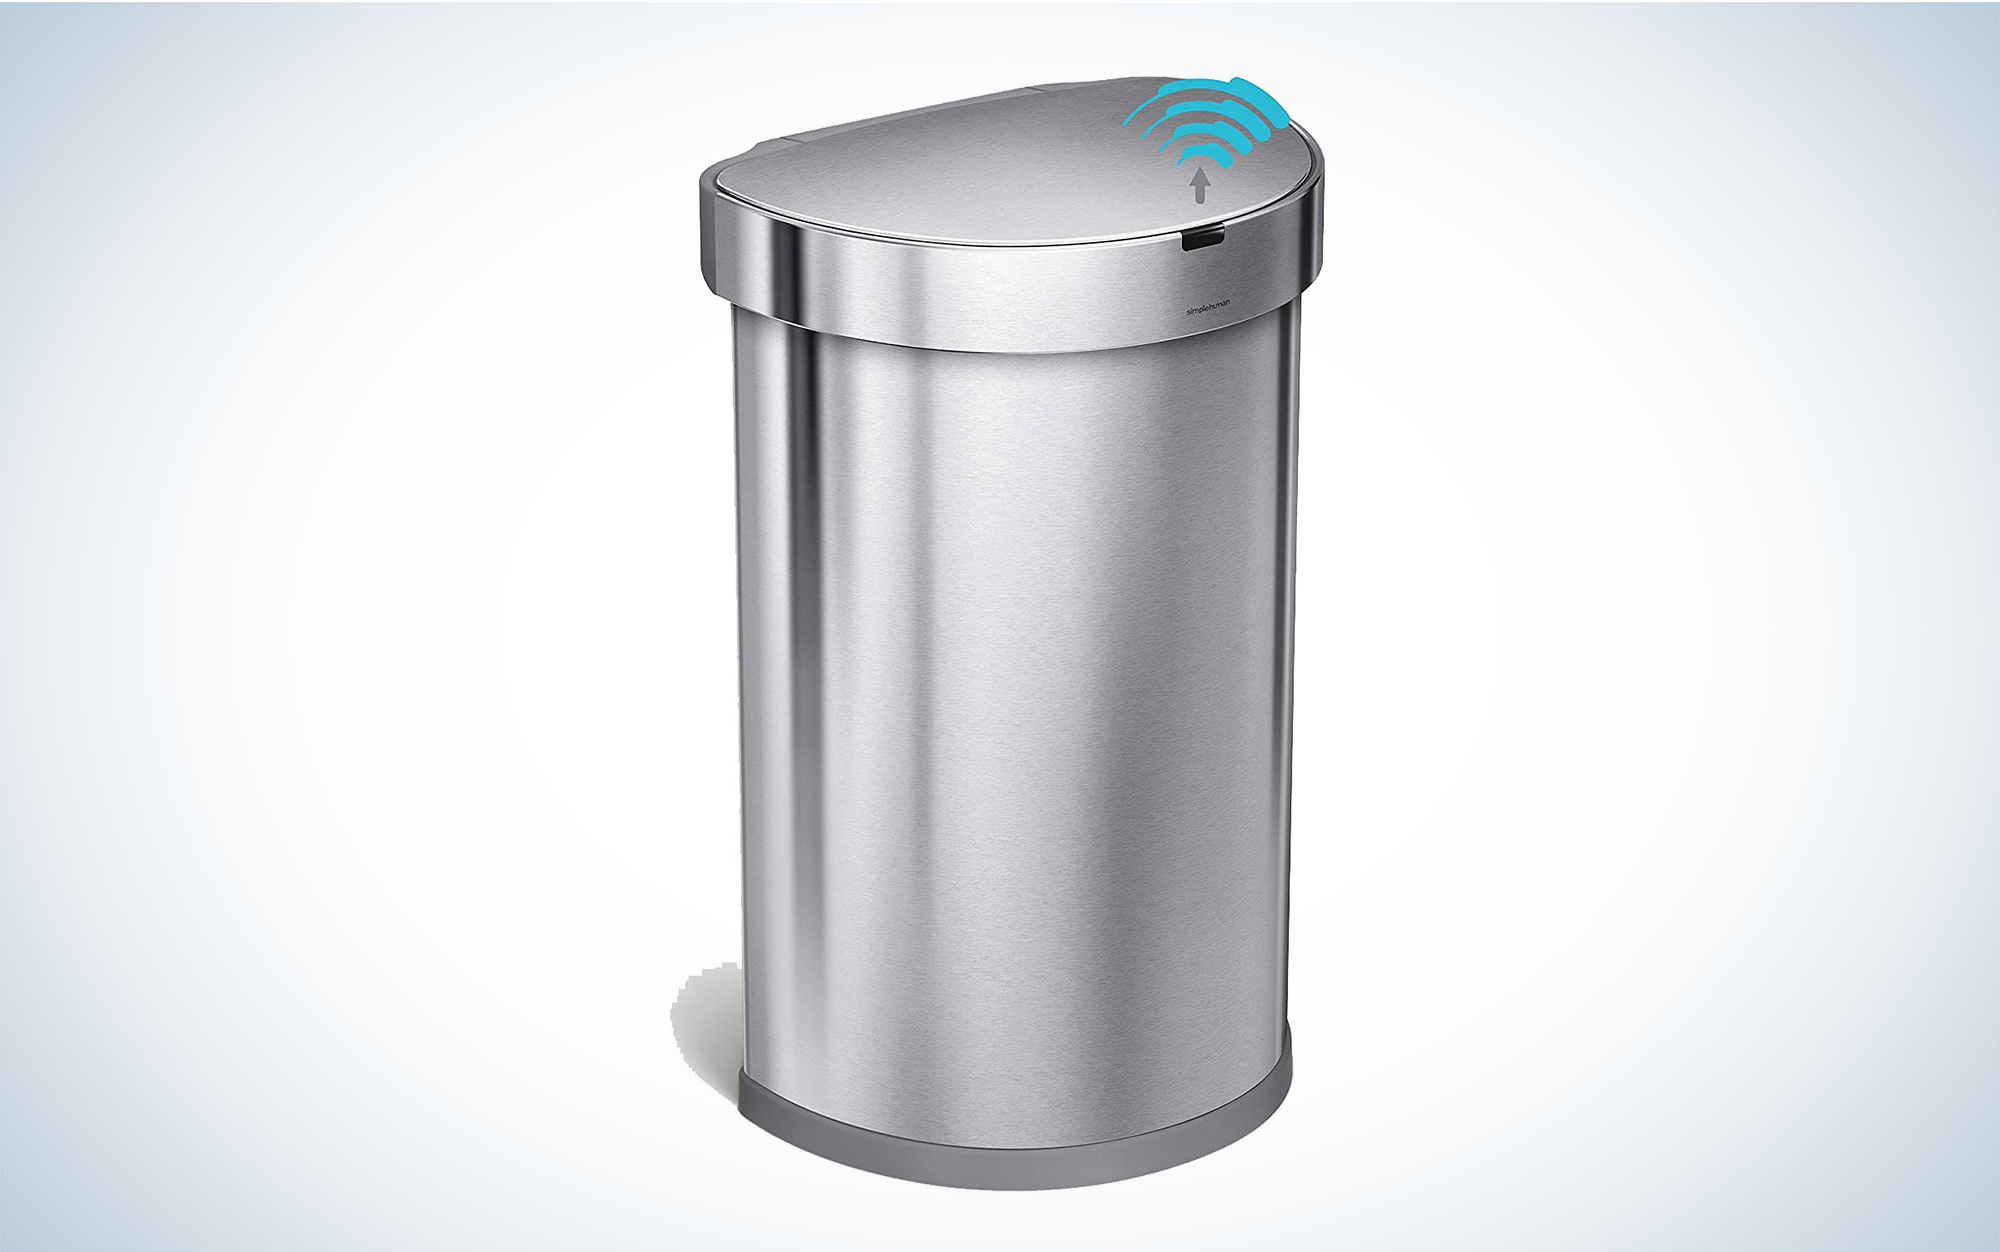 simplehuman motion-activated trash can